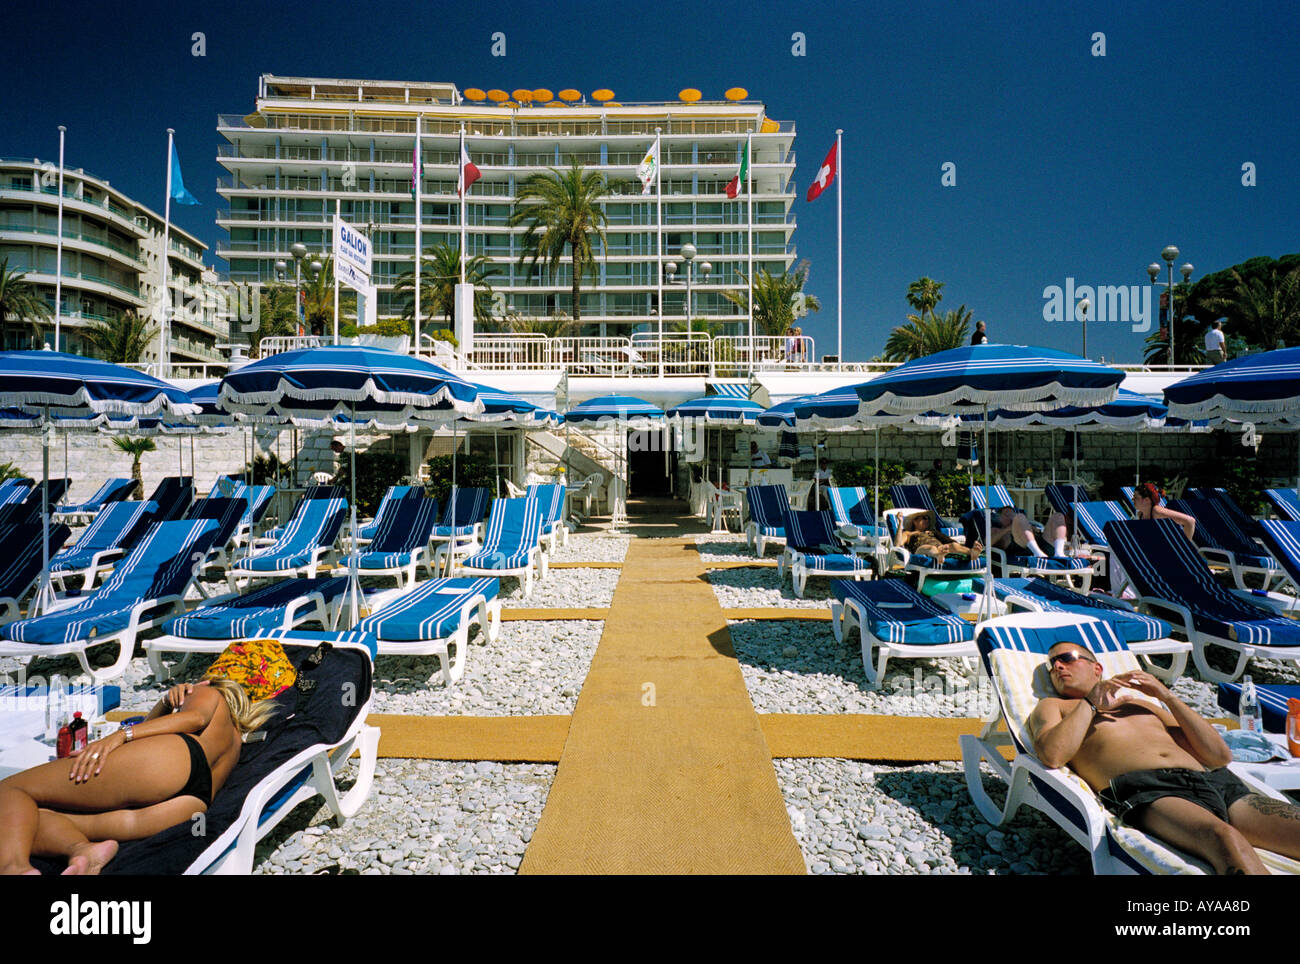 On a pay beach at Nice on the French Riviera the blue theme of the umbrellas and loungers marries well with the blue sky - Stock Image